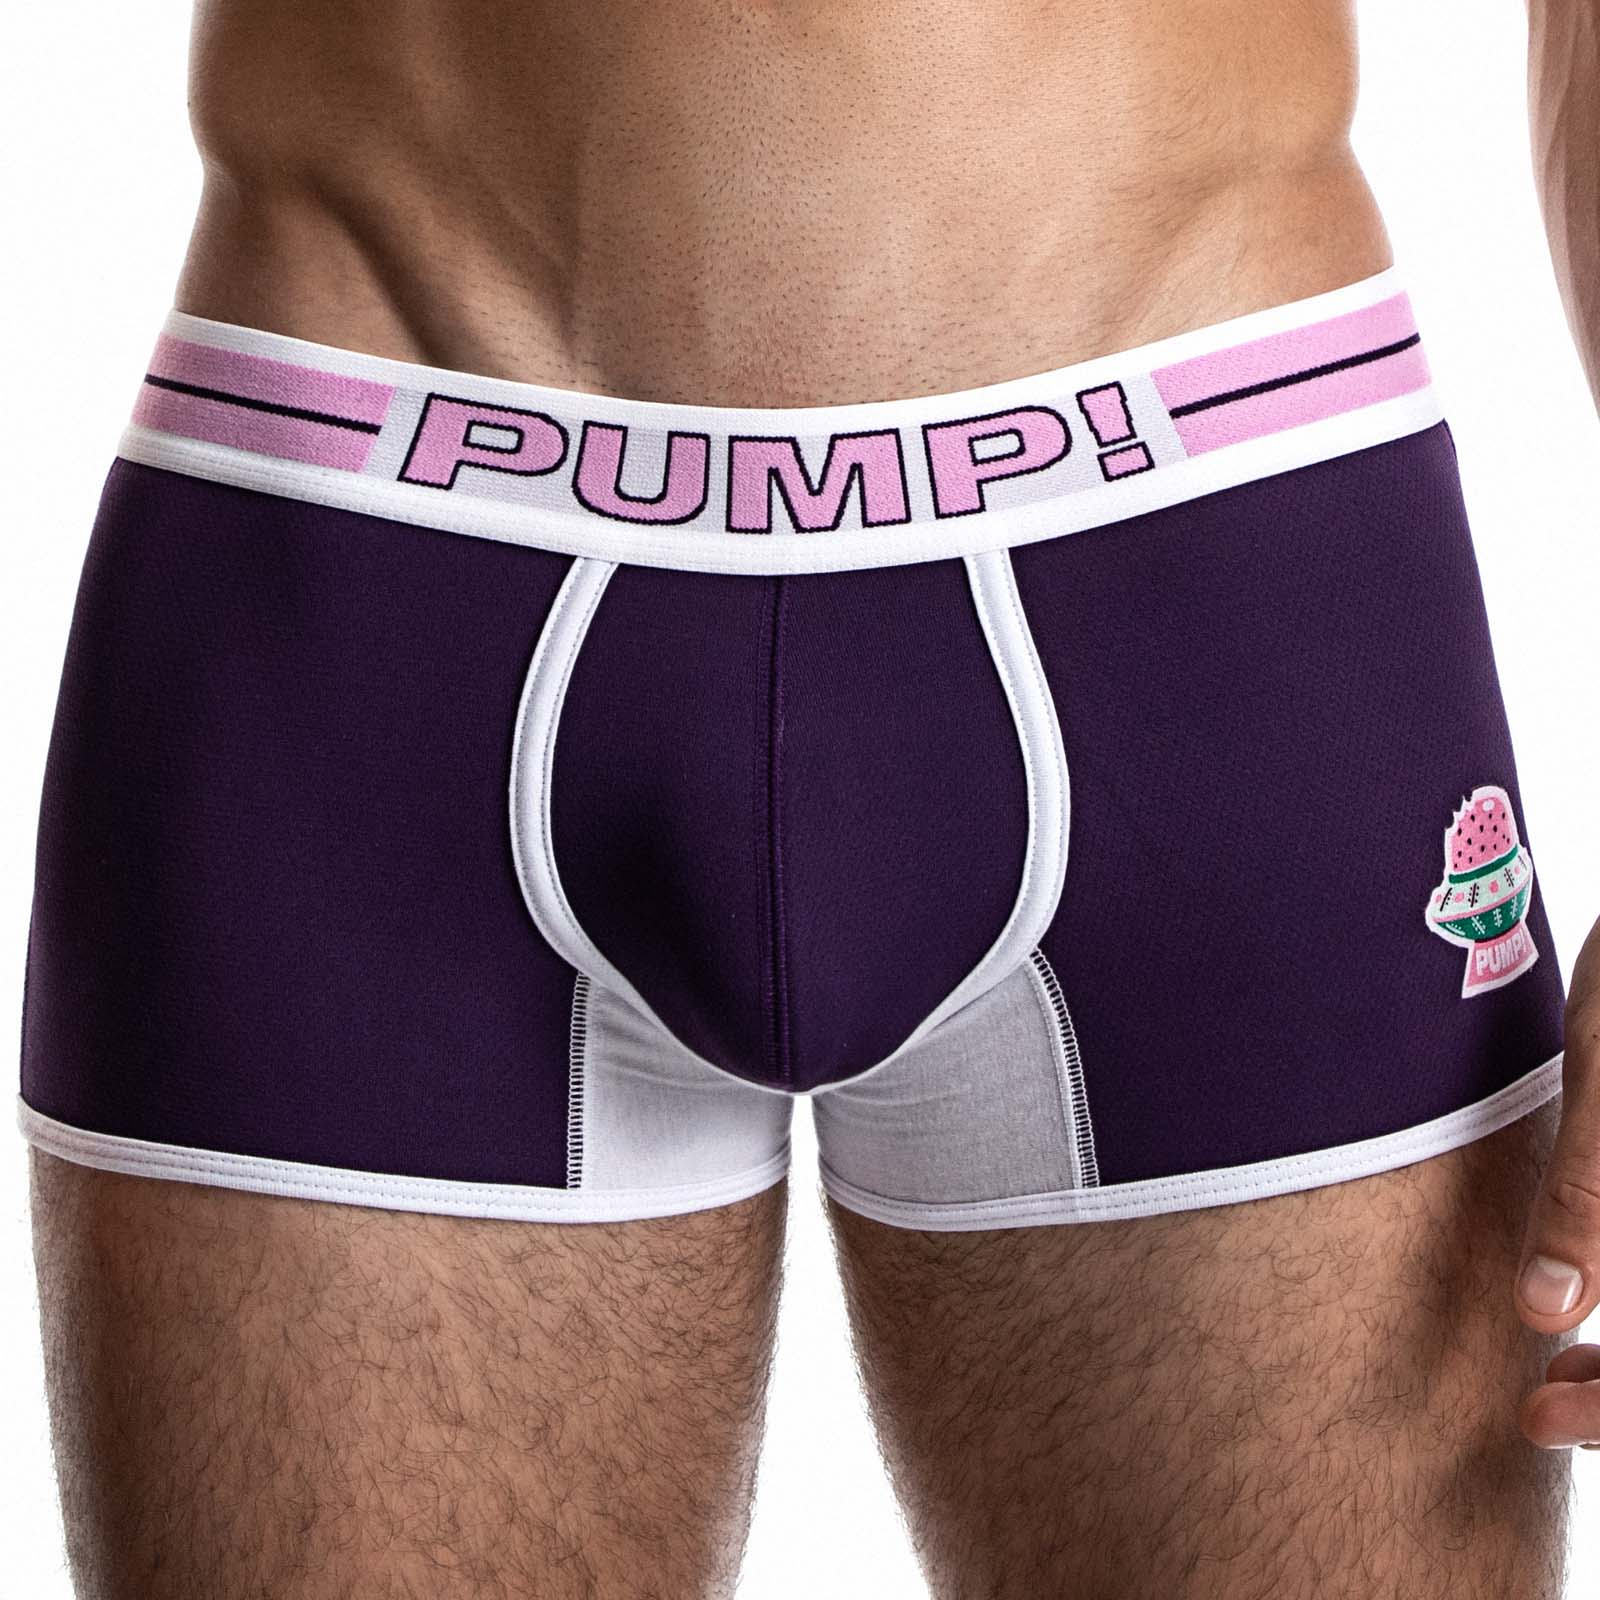 Boxer Pump! Space candy 11083